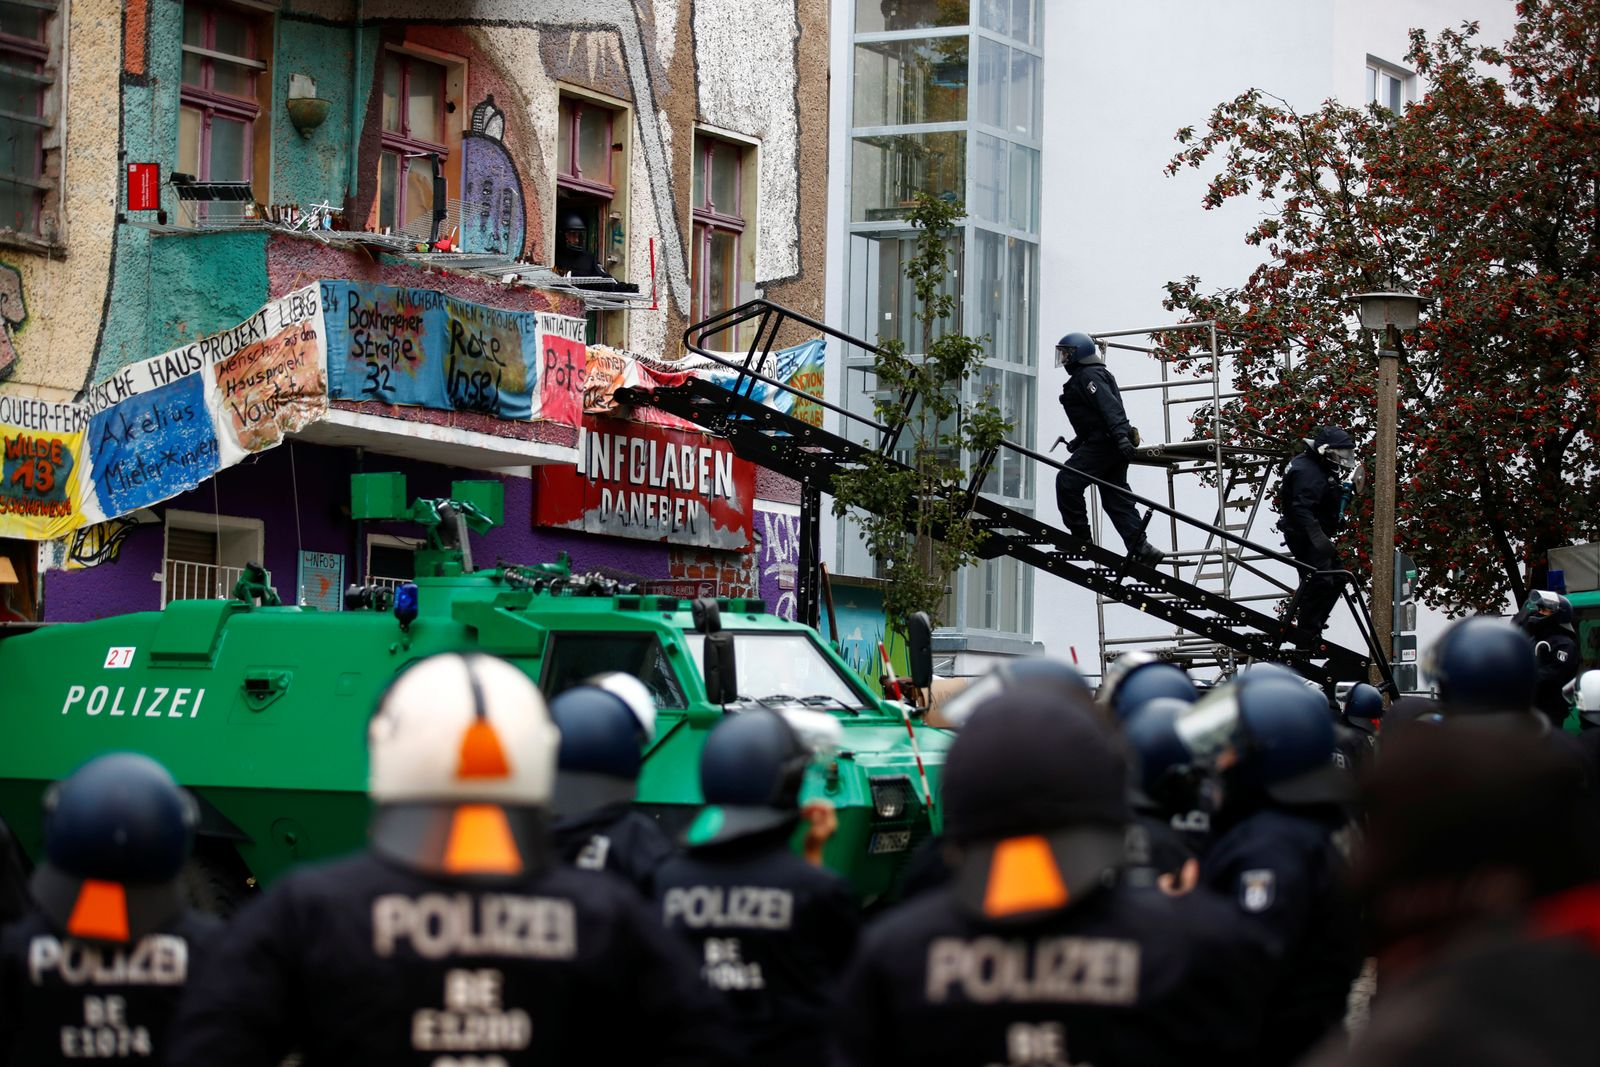 Protest by the squatted left-wing housing project Liebigstrasse 34, which faces eviction by the police in Berlin